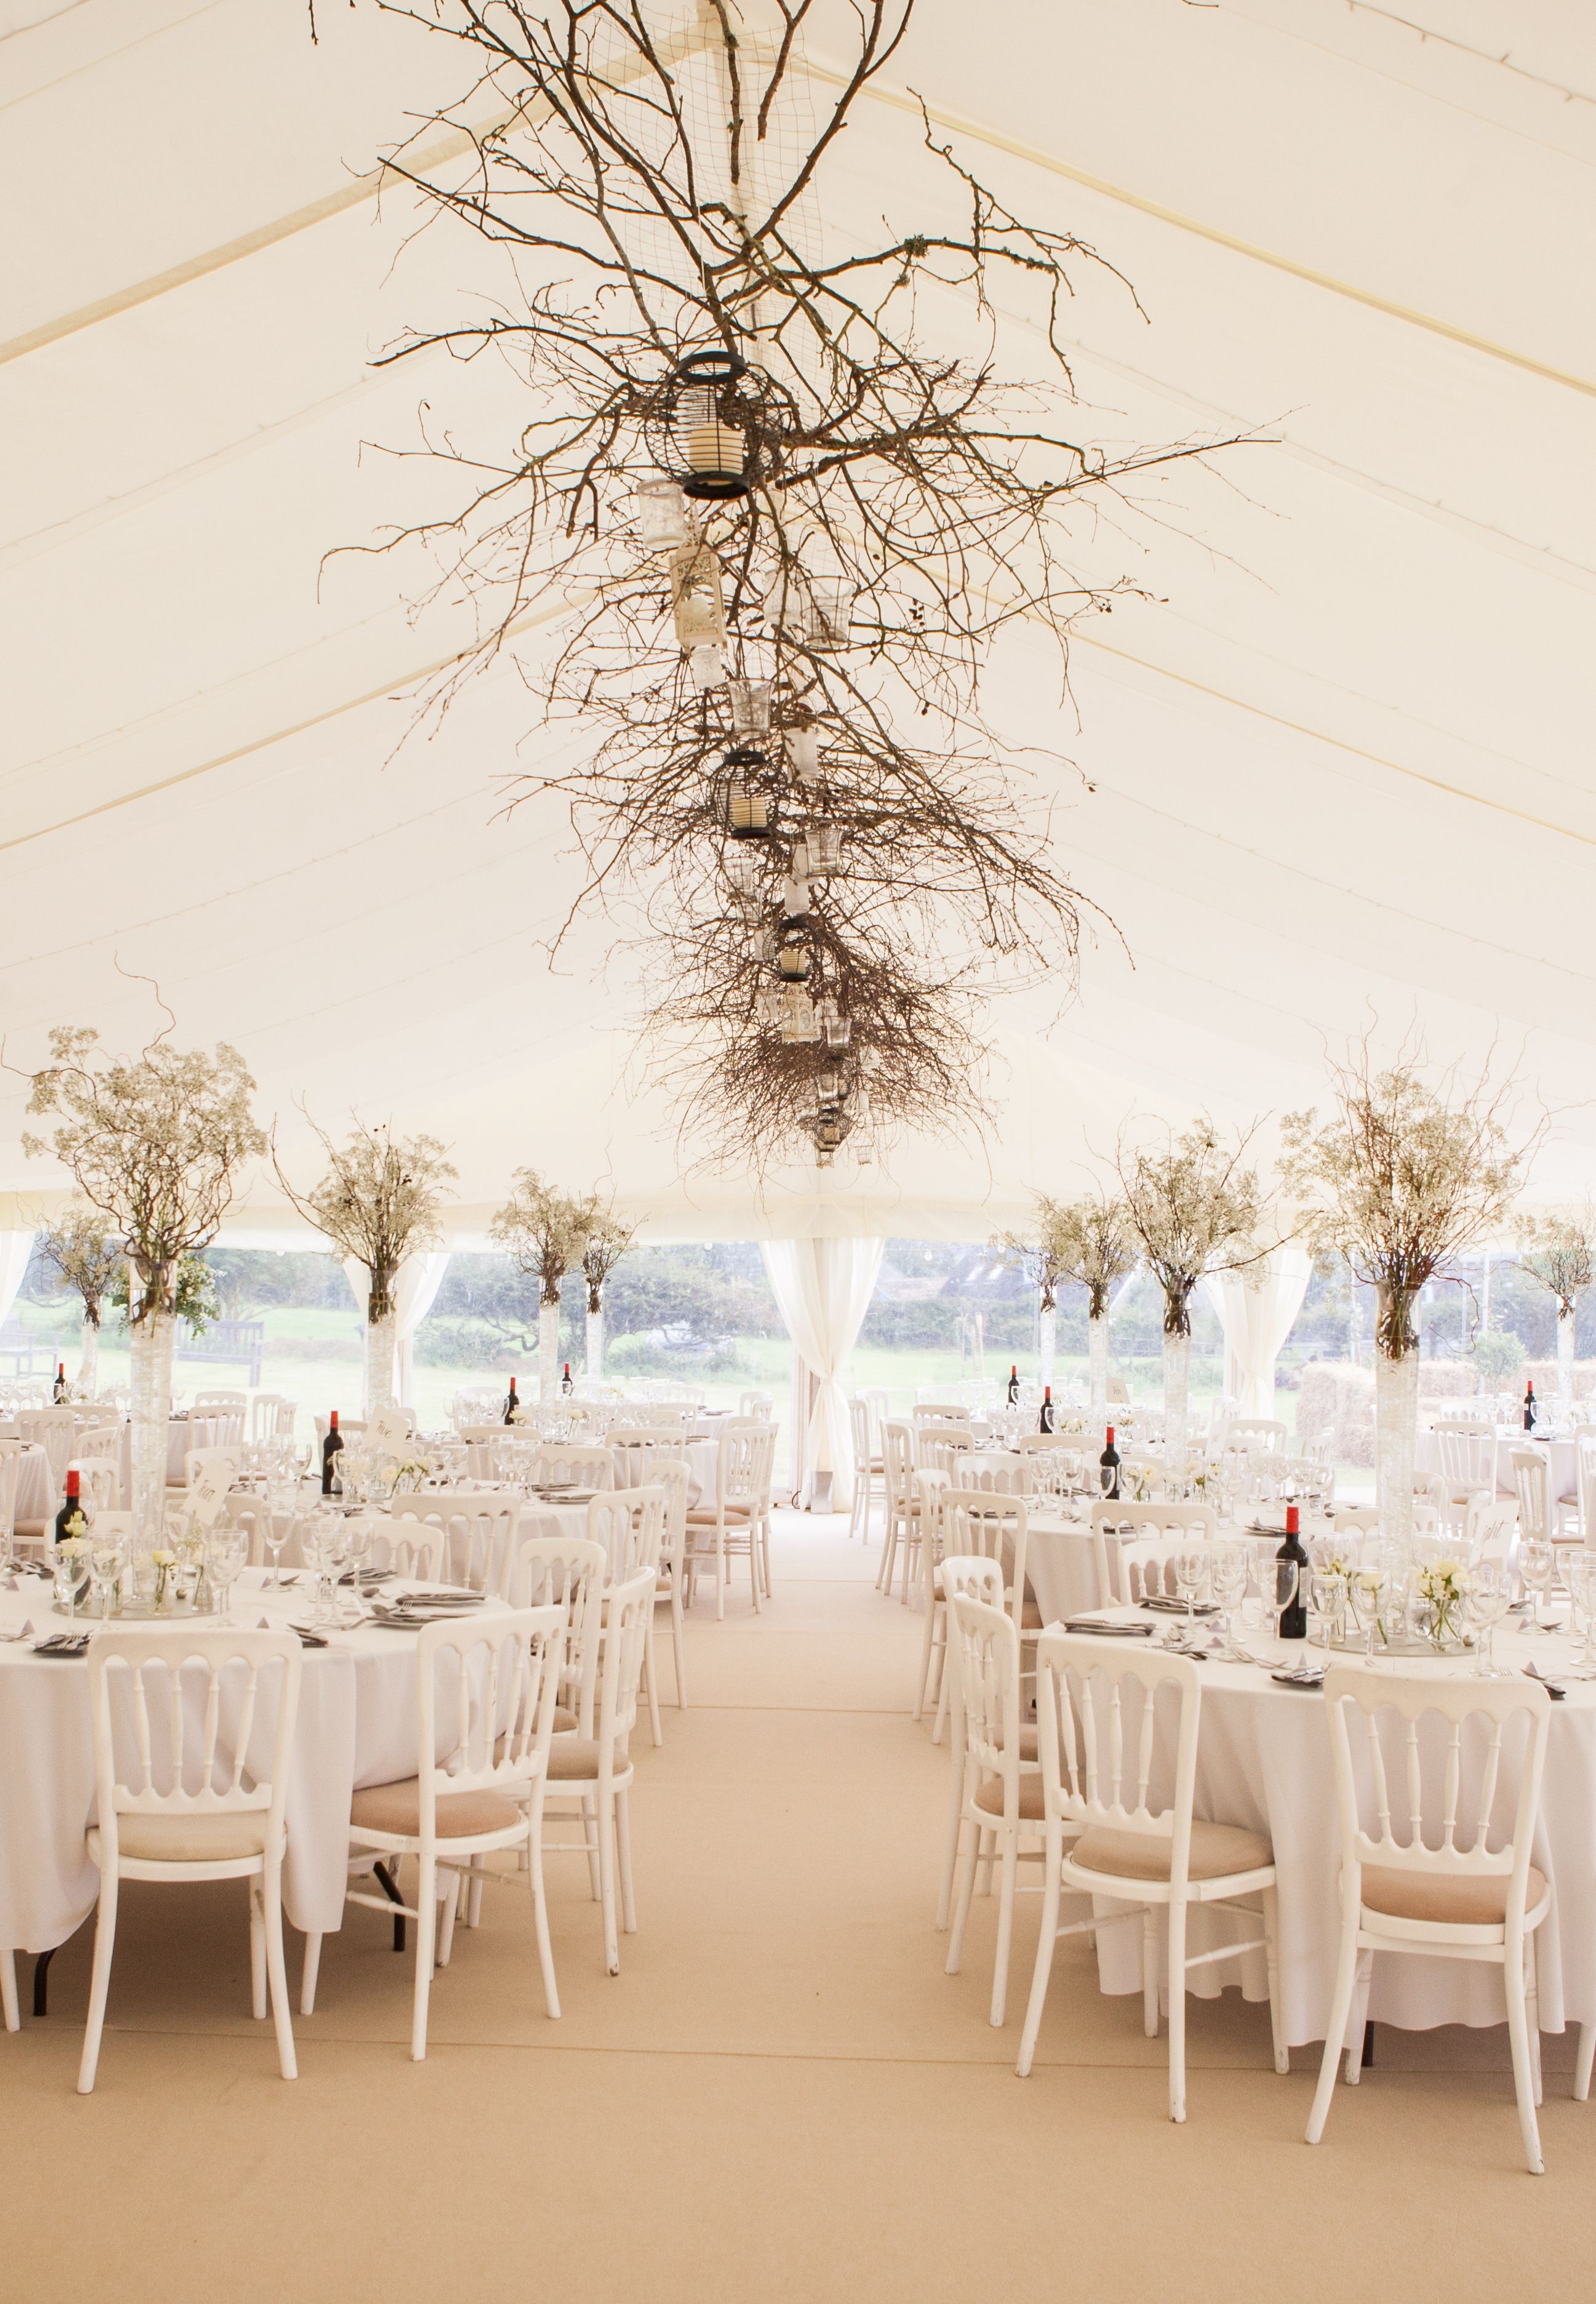 Stylish wedding marquee Fairy lights behind the flat linings twigs